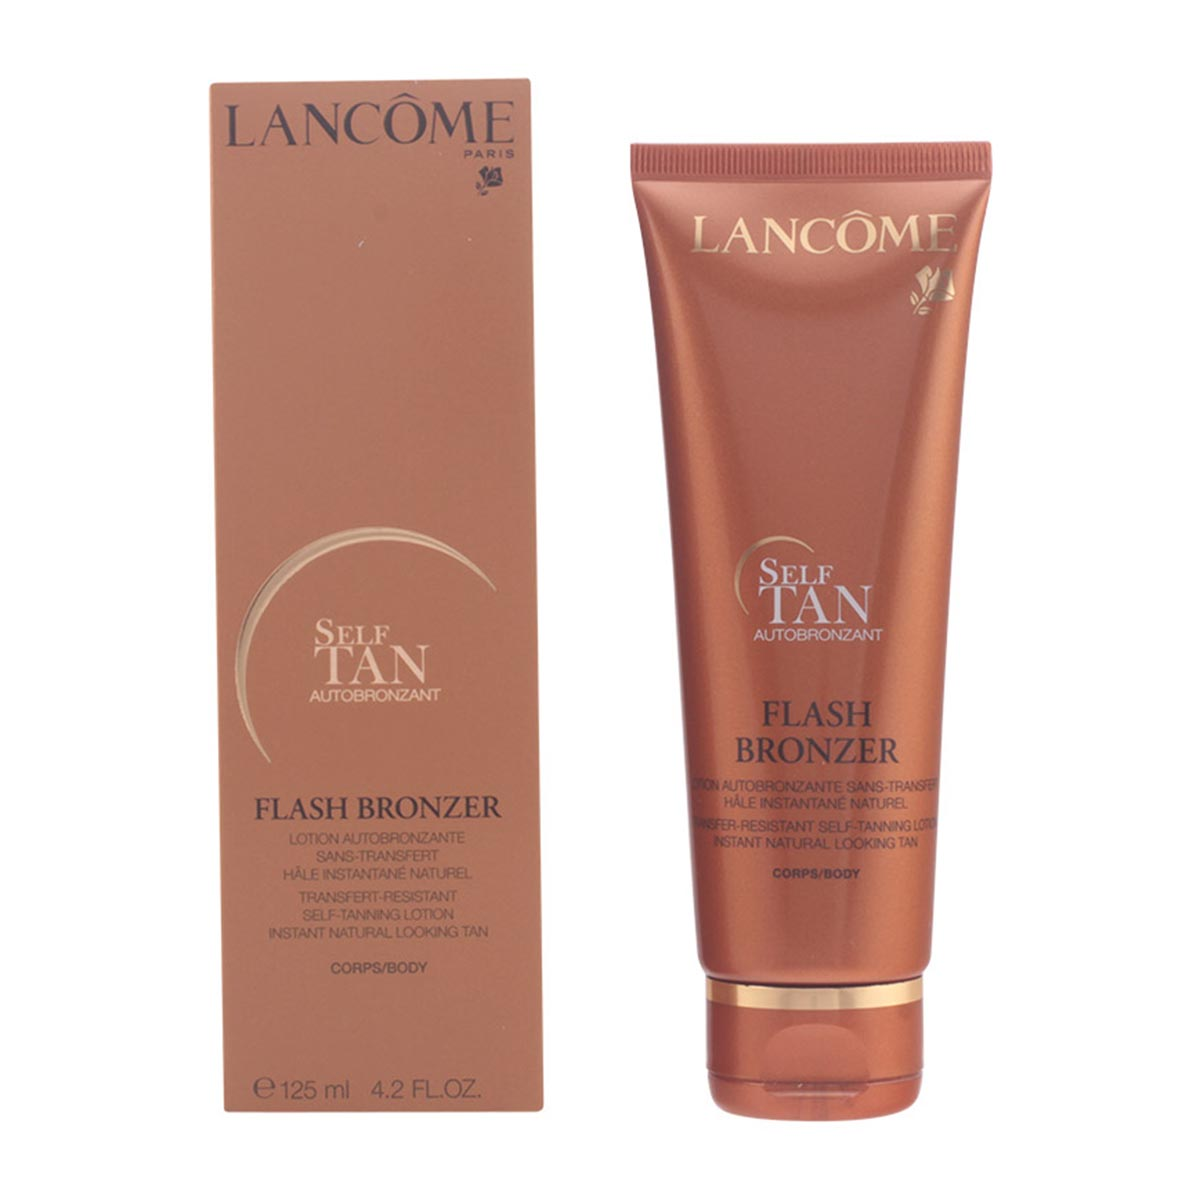 Lancome self tan autobronzant flash bronzer lotion 125ml